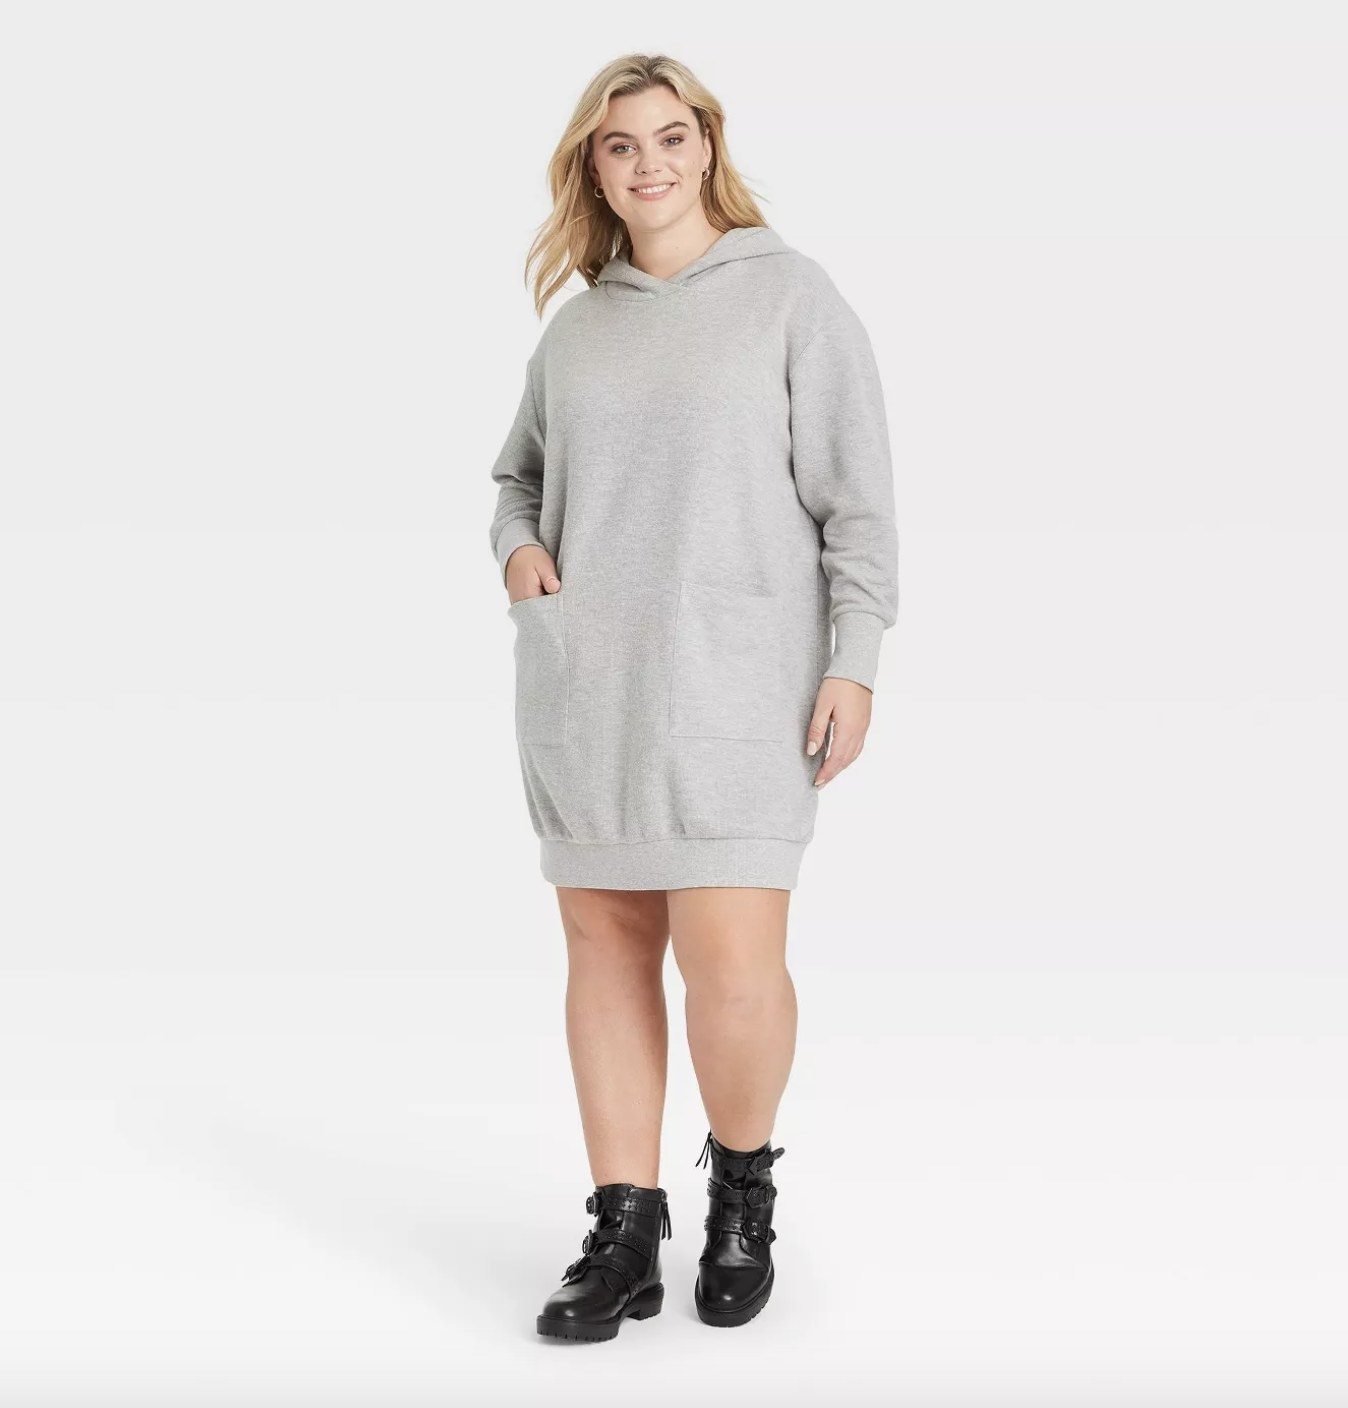 the sweatshirt dress in gray